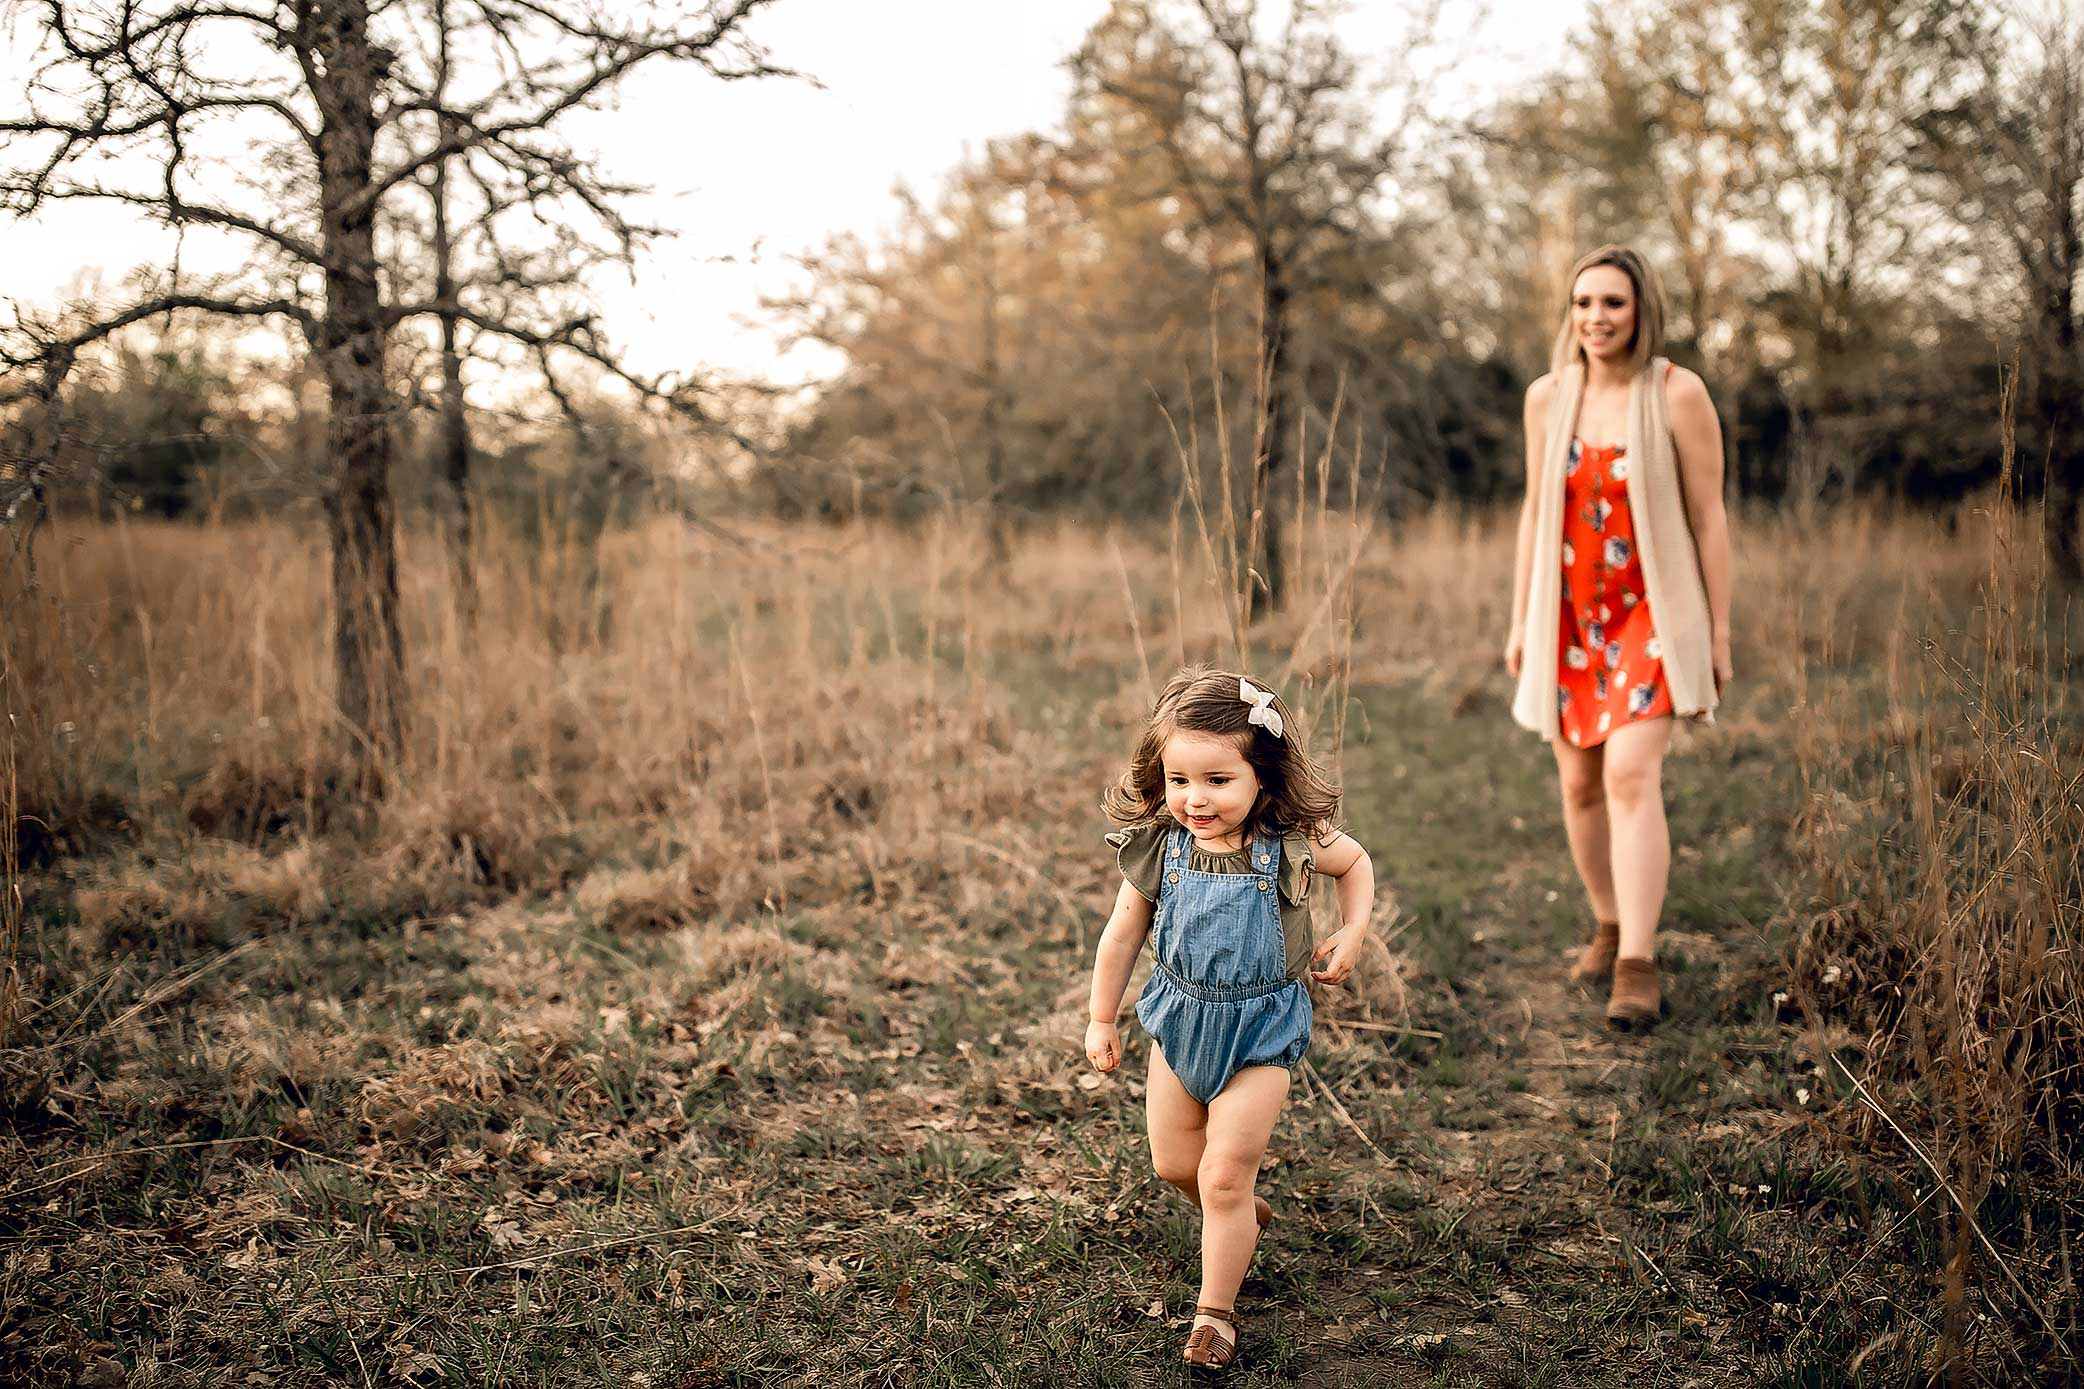 shelby-schiller-photography-sunset-family-pictures-spring-2019-53.jpg